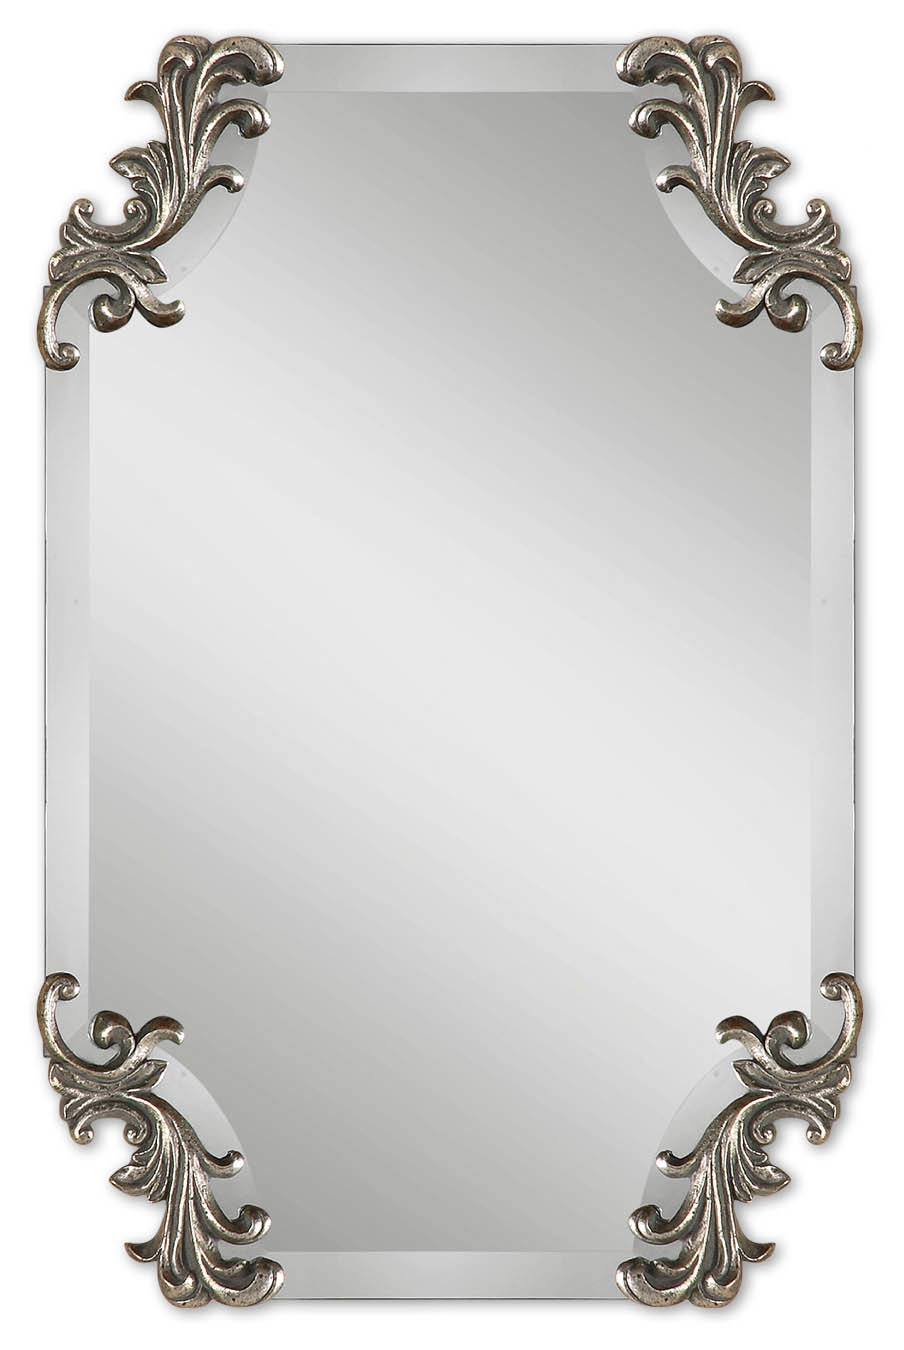 Fashionable Liggins Borchardt Beveled Wall Mirror Regarding Alissa Traditional Wall Mirrors (View 8 of 20)